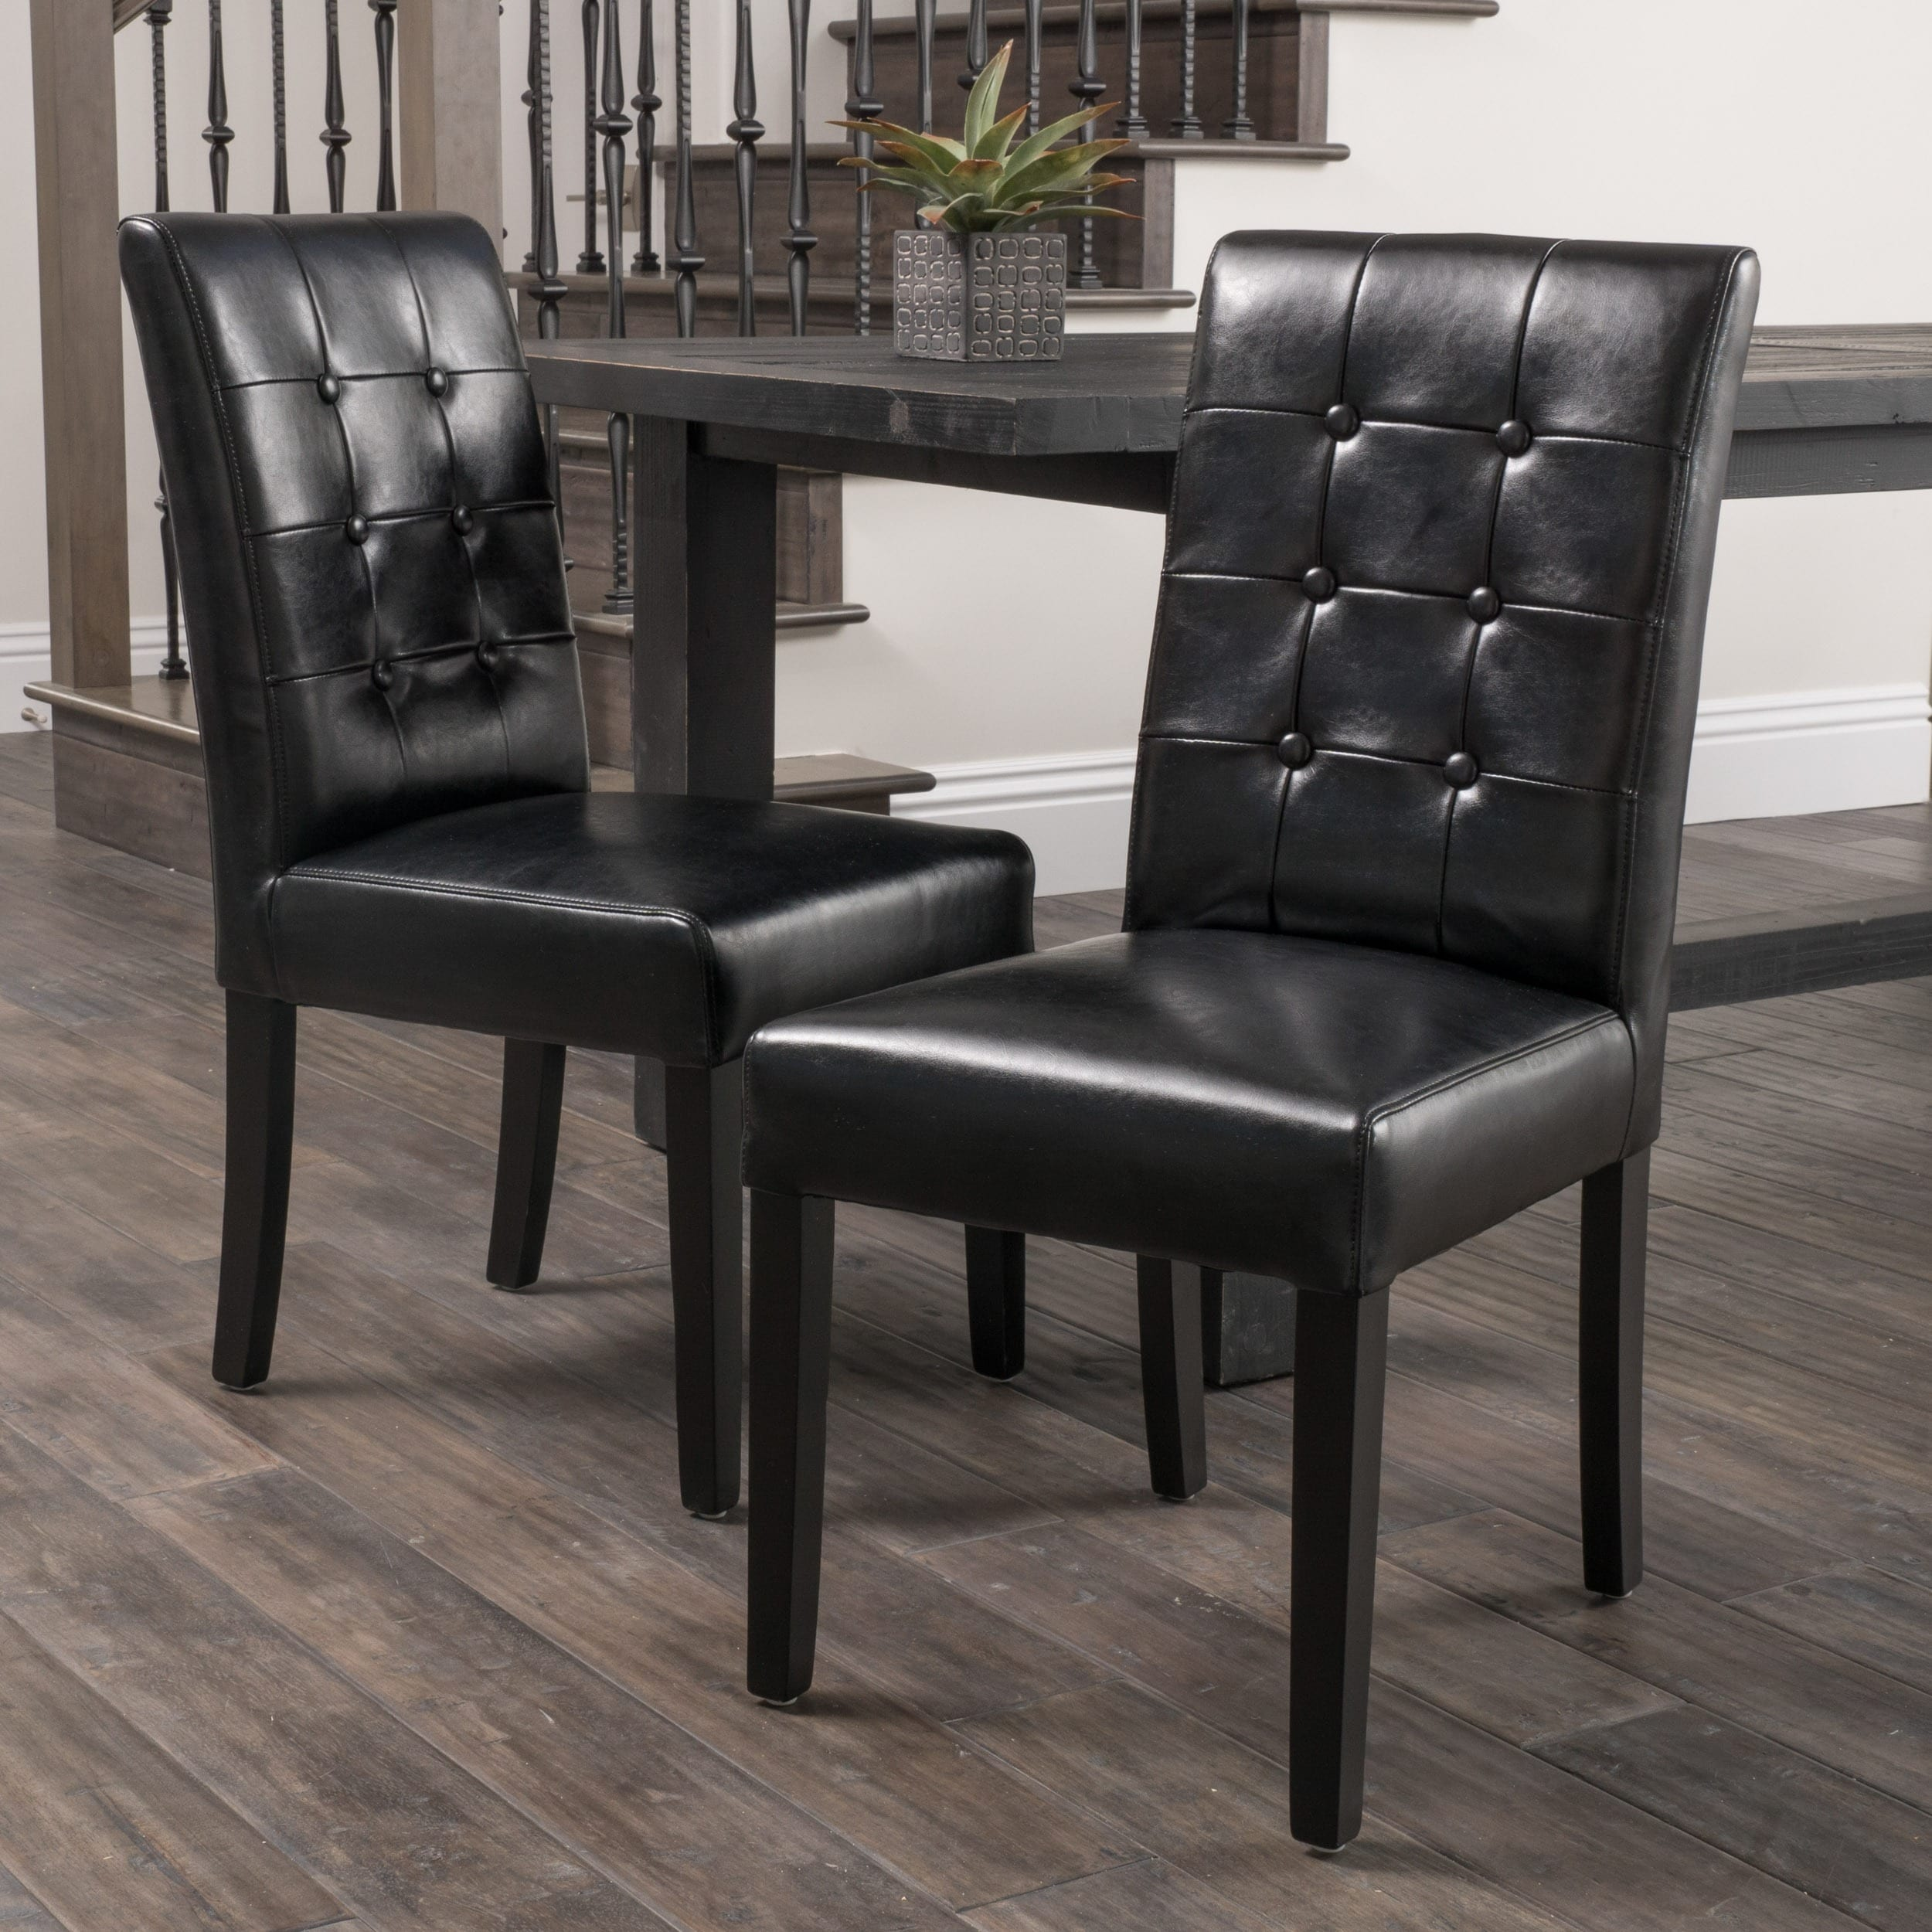 Roland black leather dining chairs set of 2 by christopher knight home